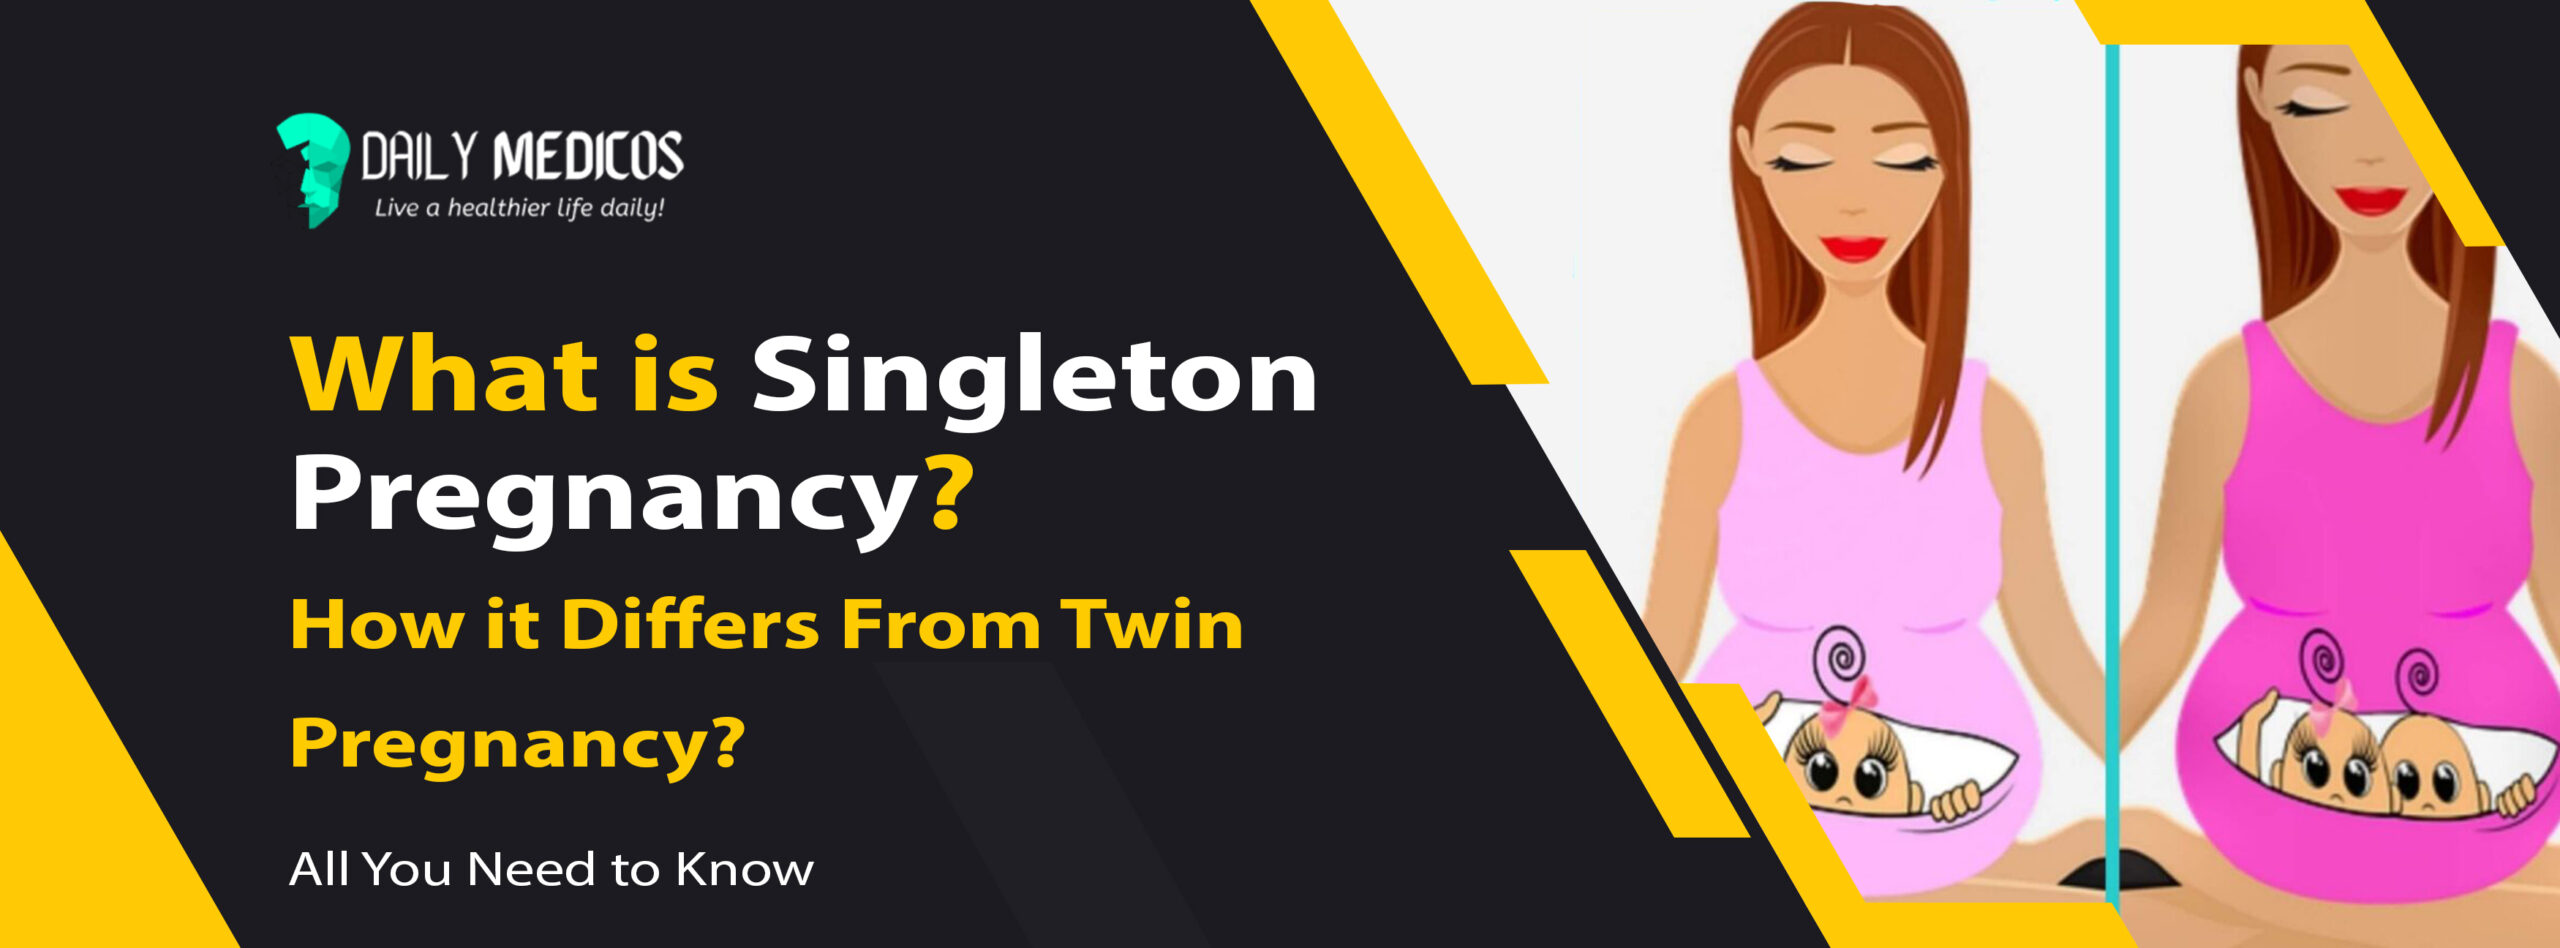 What is Singleton Pregnancy and How it Differs From Twin Pregnancy? [All You Need to Know] 25 - Daily Medicos